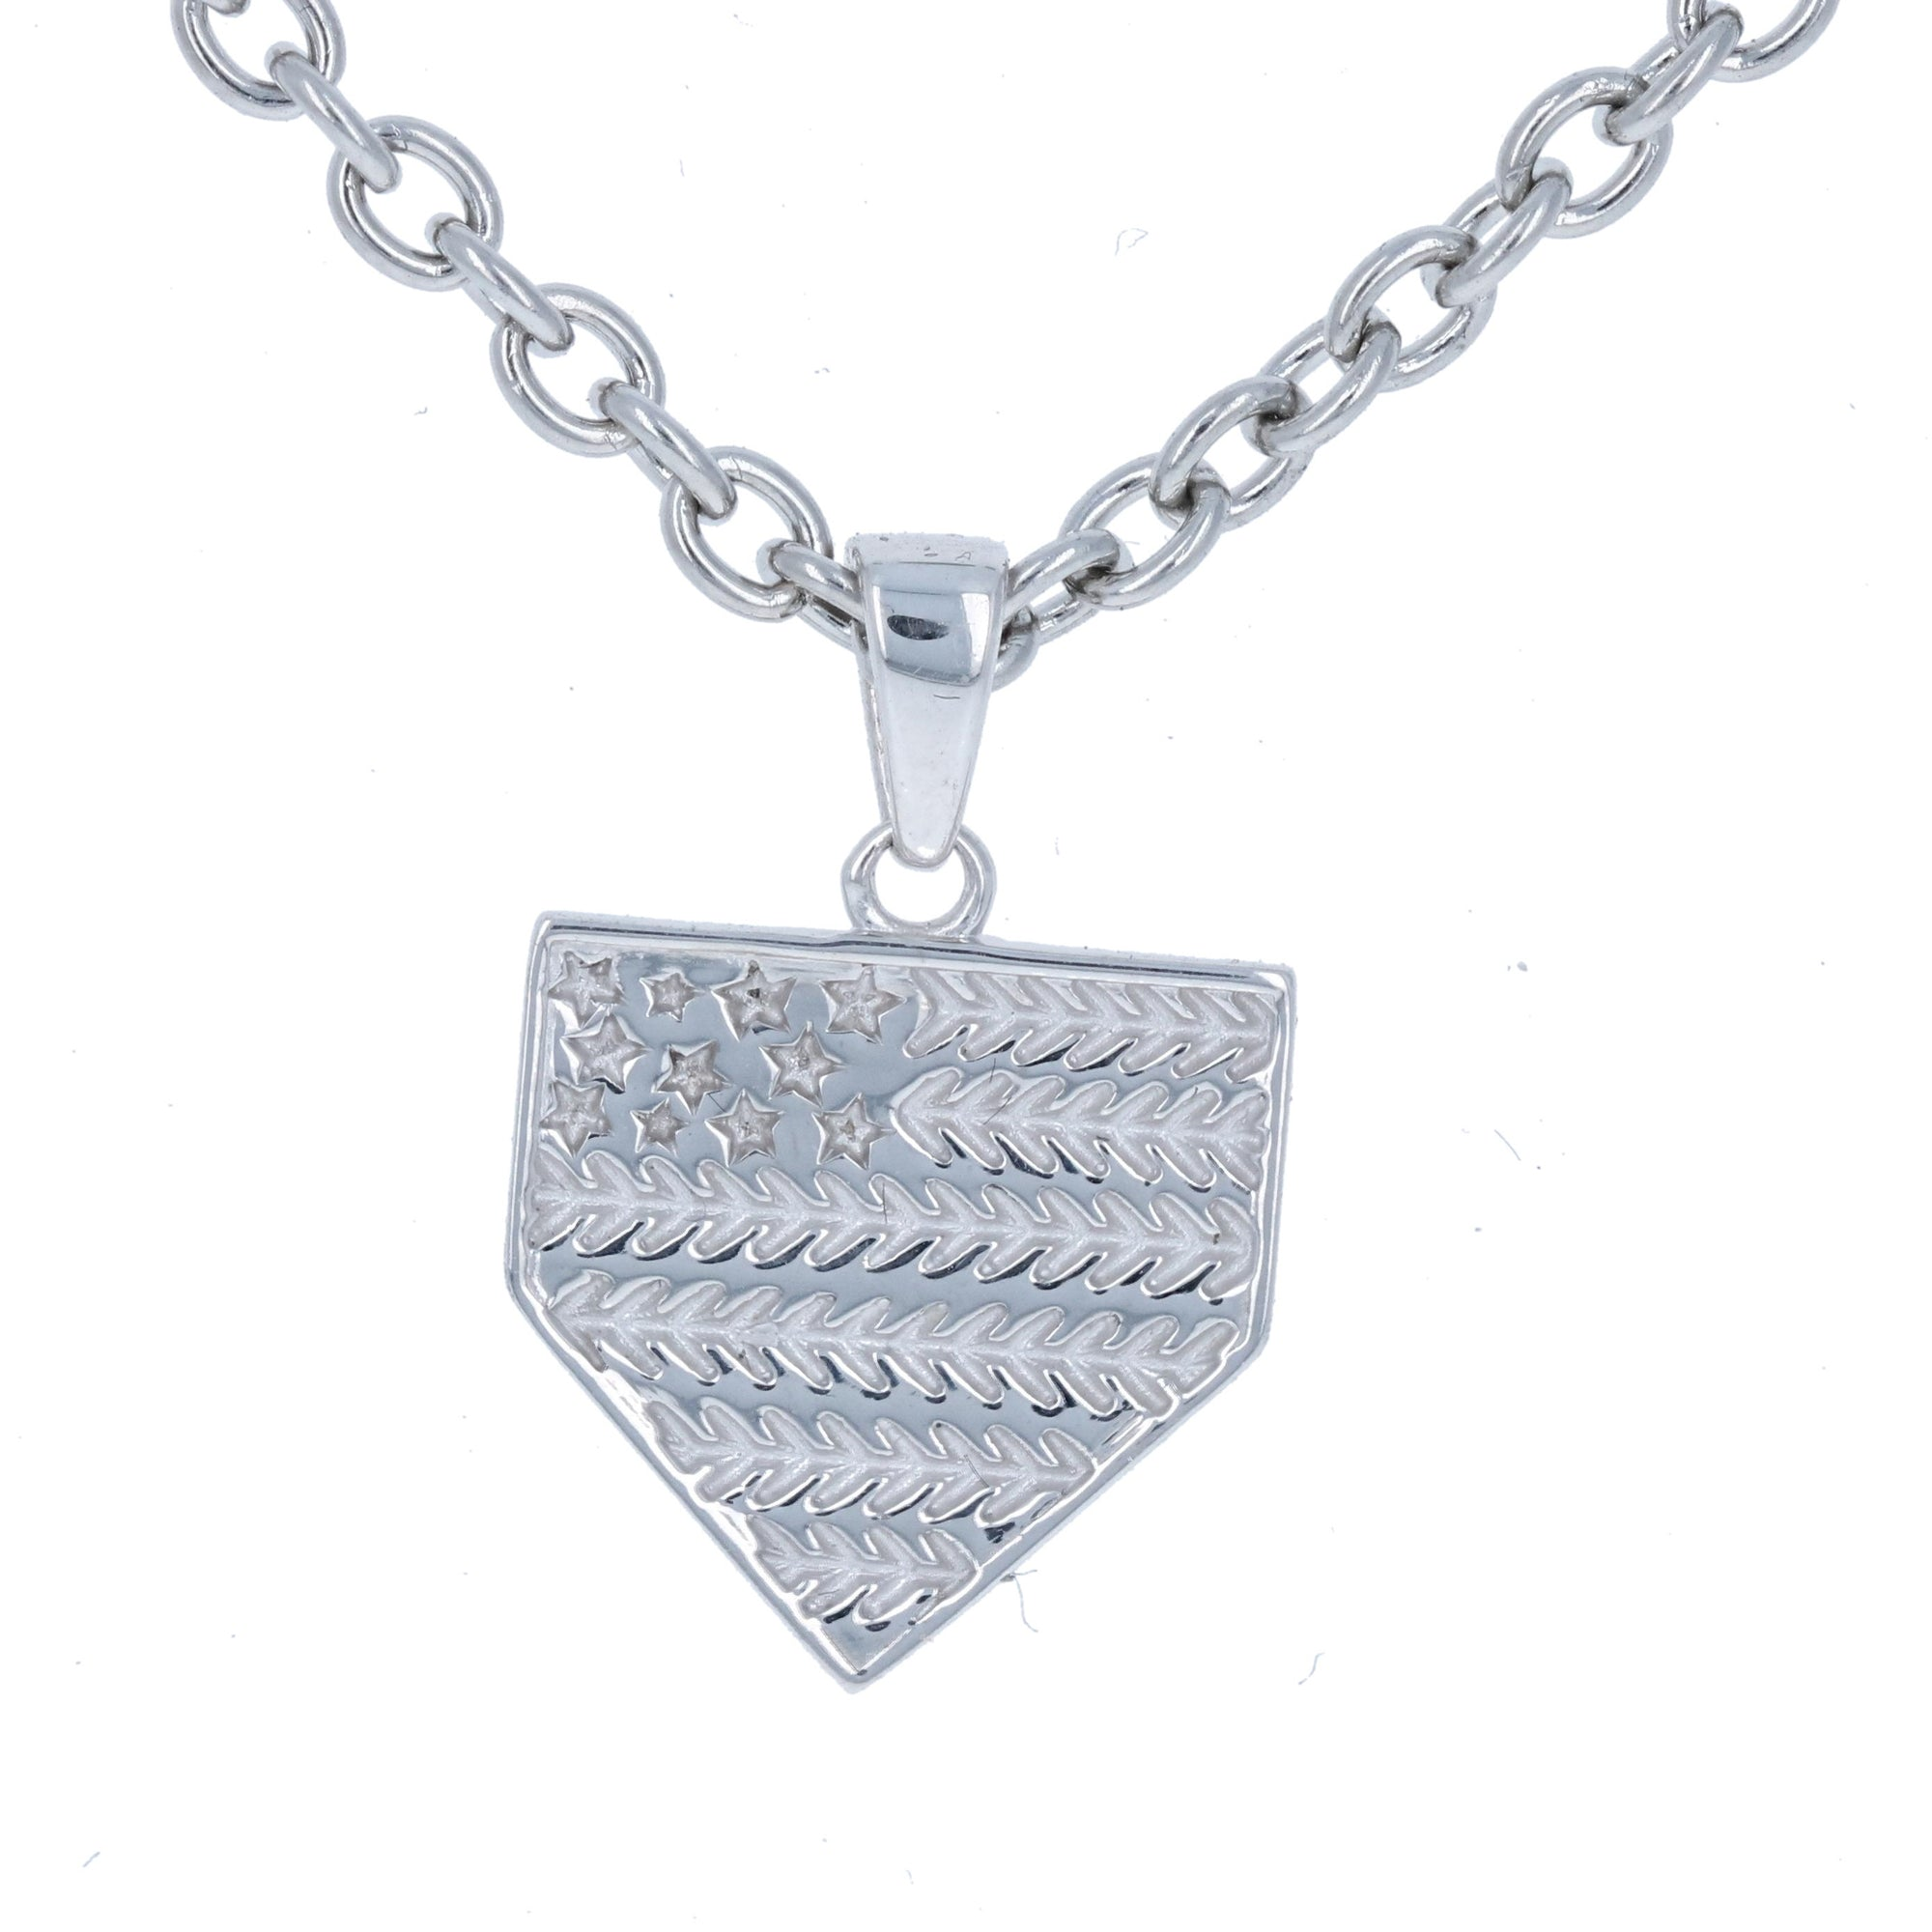 pendant necklace at steel in cross cfm sterling chain products detail silver mens with baseball jewelry stainless palmbeach